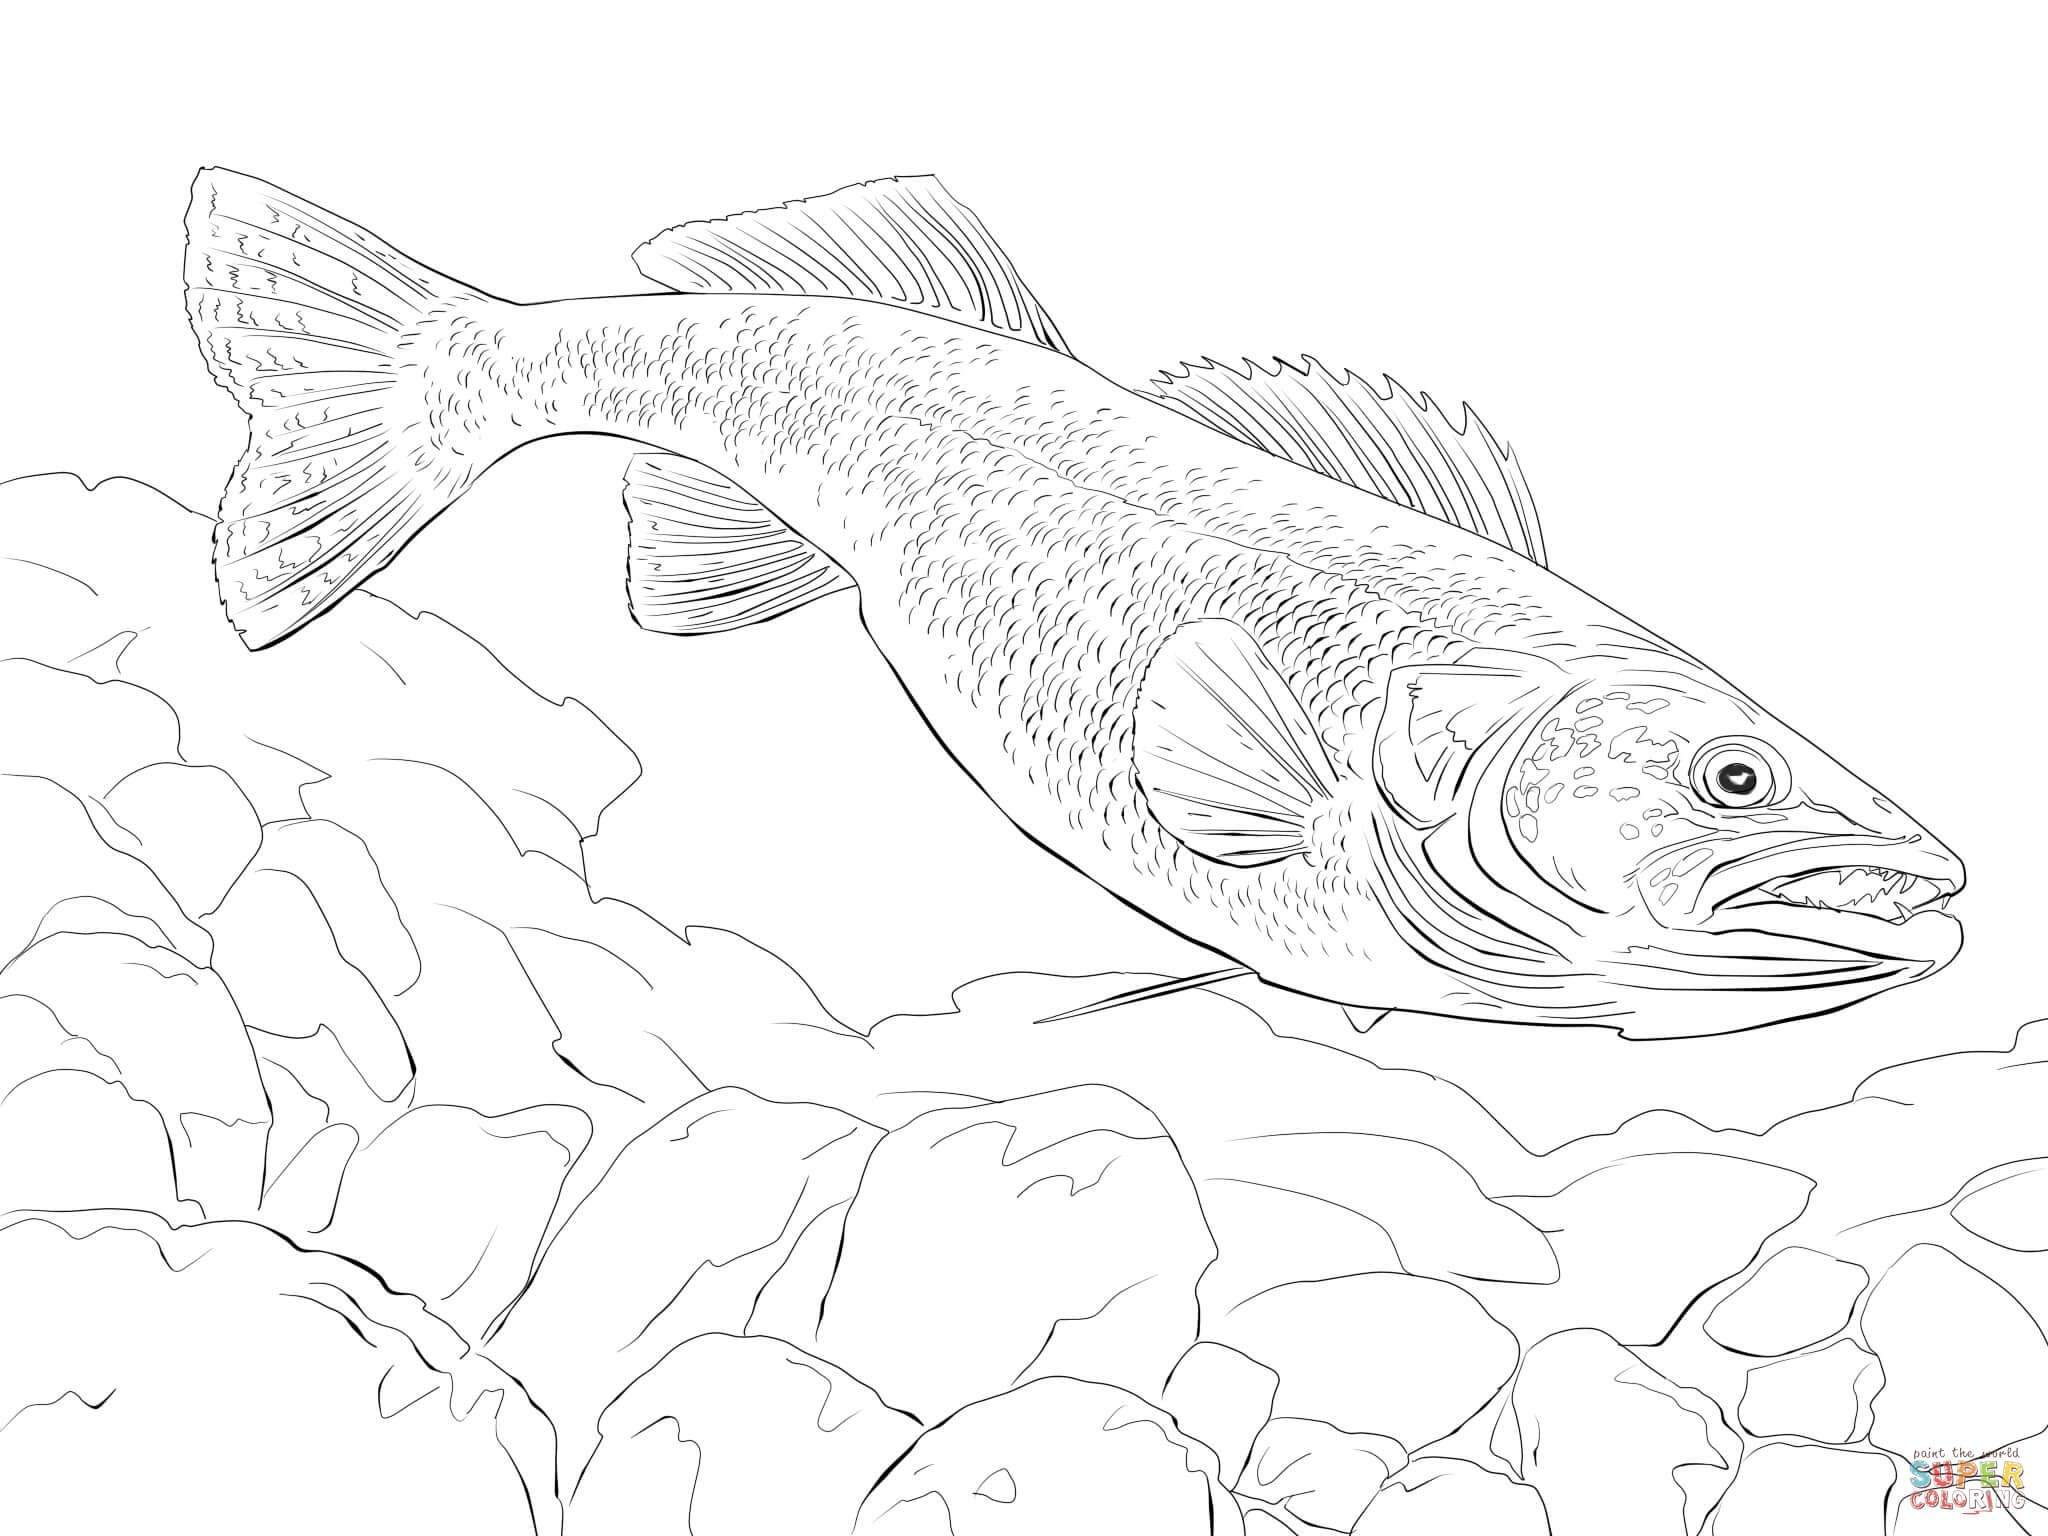 Walleye Fish Coloring Page Fish Coloring Page Walleye Fishing